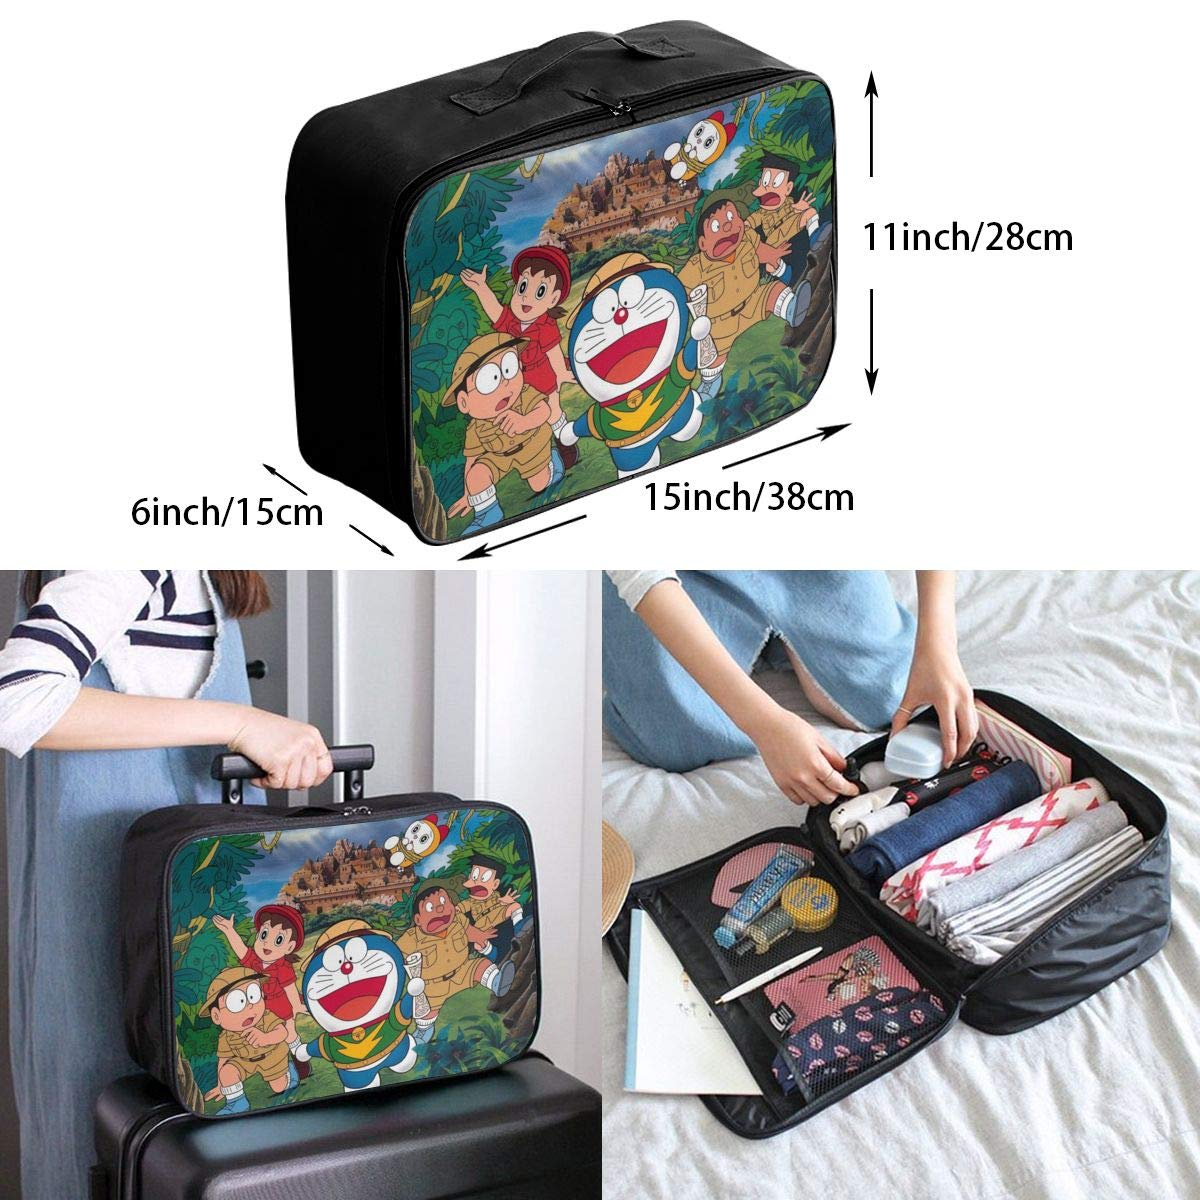 Anime Blue Robot Dingdang Cat Customize Casual Portable Travel Bag Suitcase Storage Bag Luggage Packing Tote Bag Trolley Bag